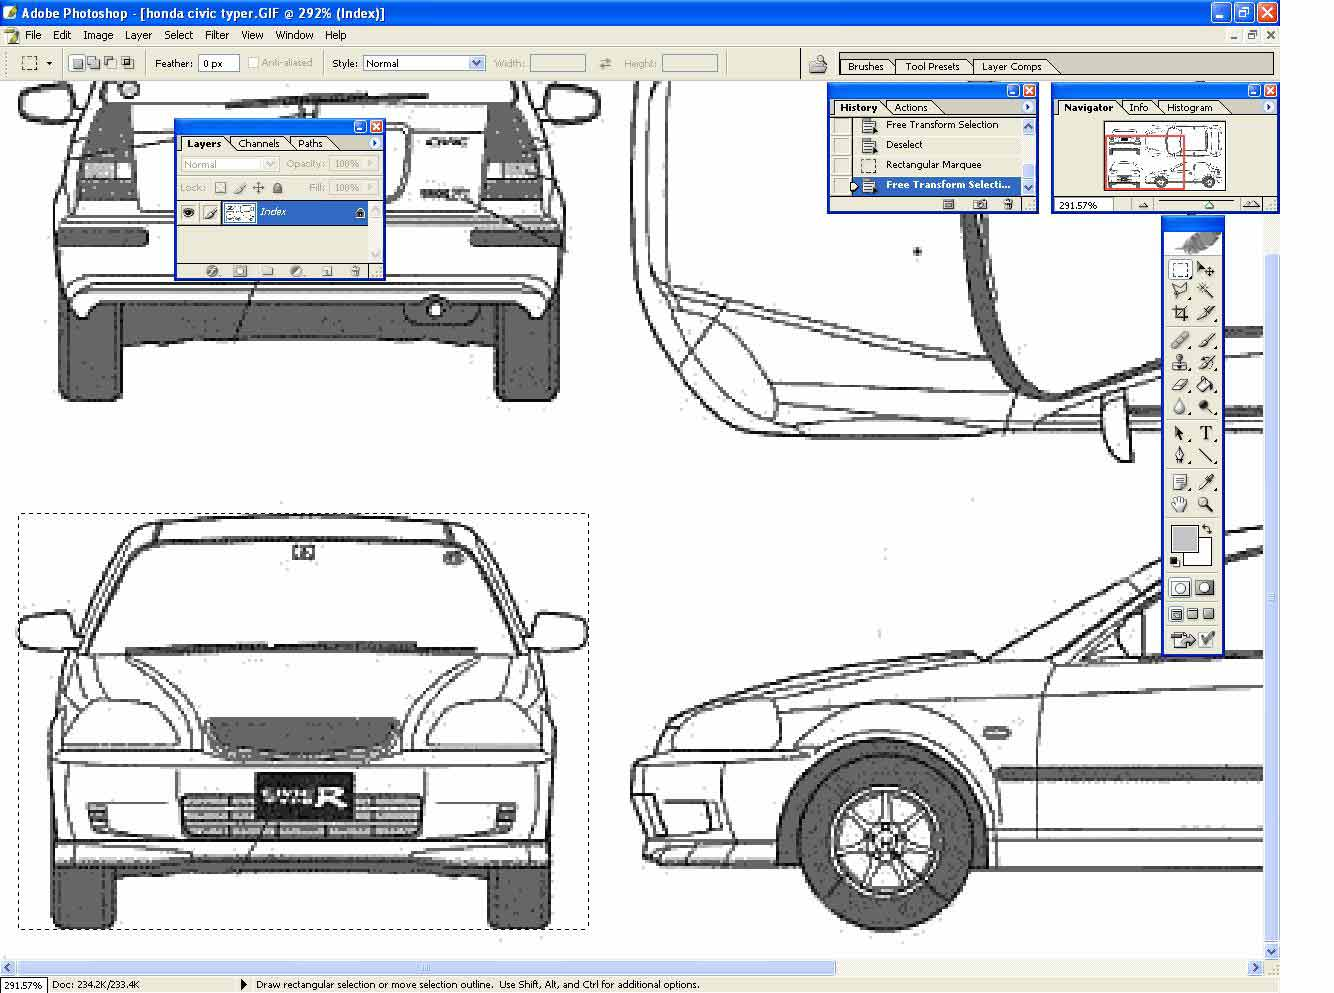 Assads designs blueprints setup tutorial copy it filenew leave the settings default paste it in the new file filesave for web set quality to low and save as civic front malvernweather Choice Image